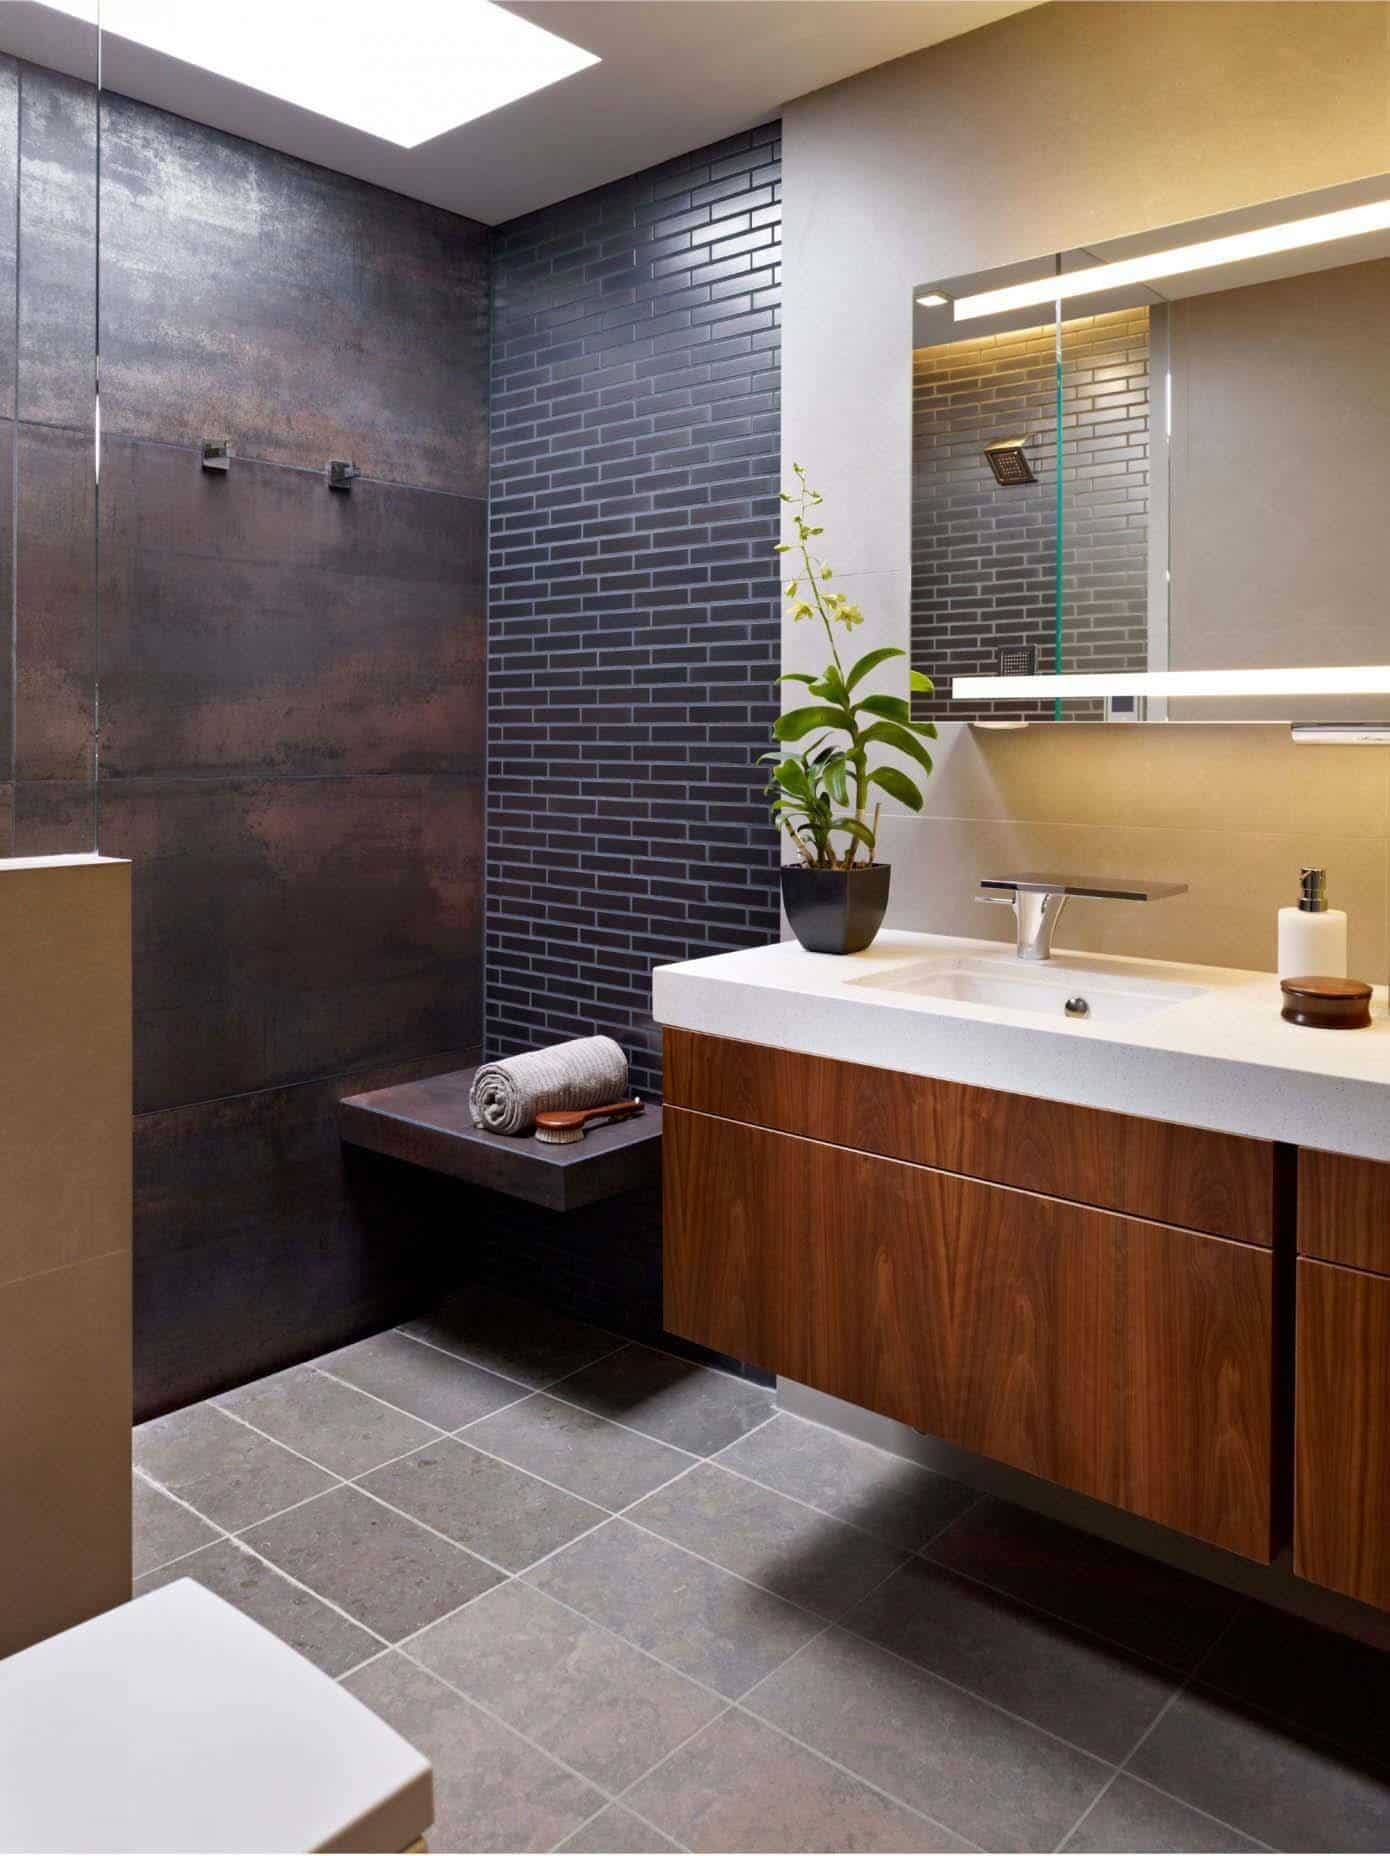 Superior Mid Century Modern Bathroom Ideas Part - 8: Mid-Century Modern Bathroom Ideas-33-1 Kindesign